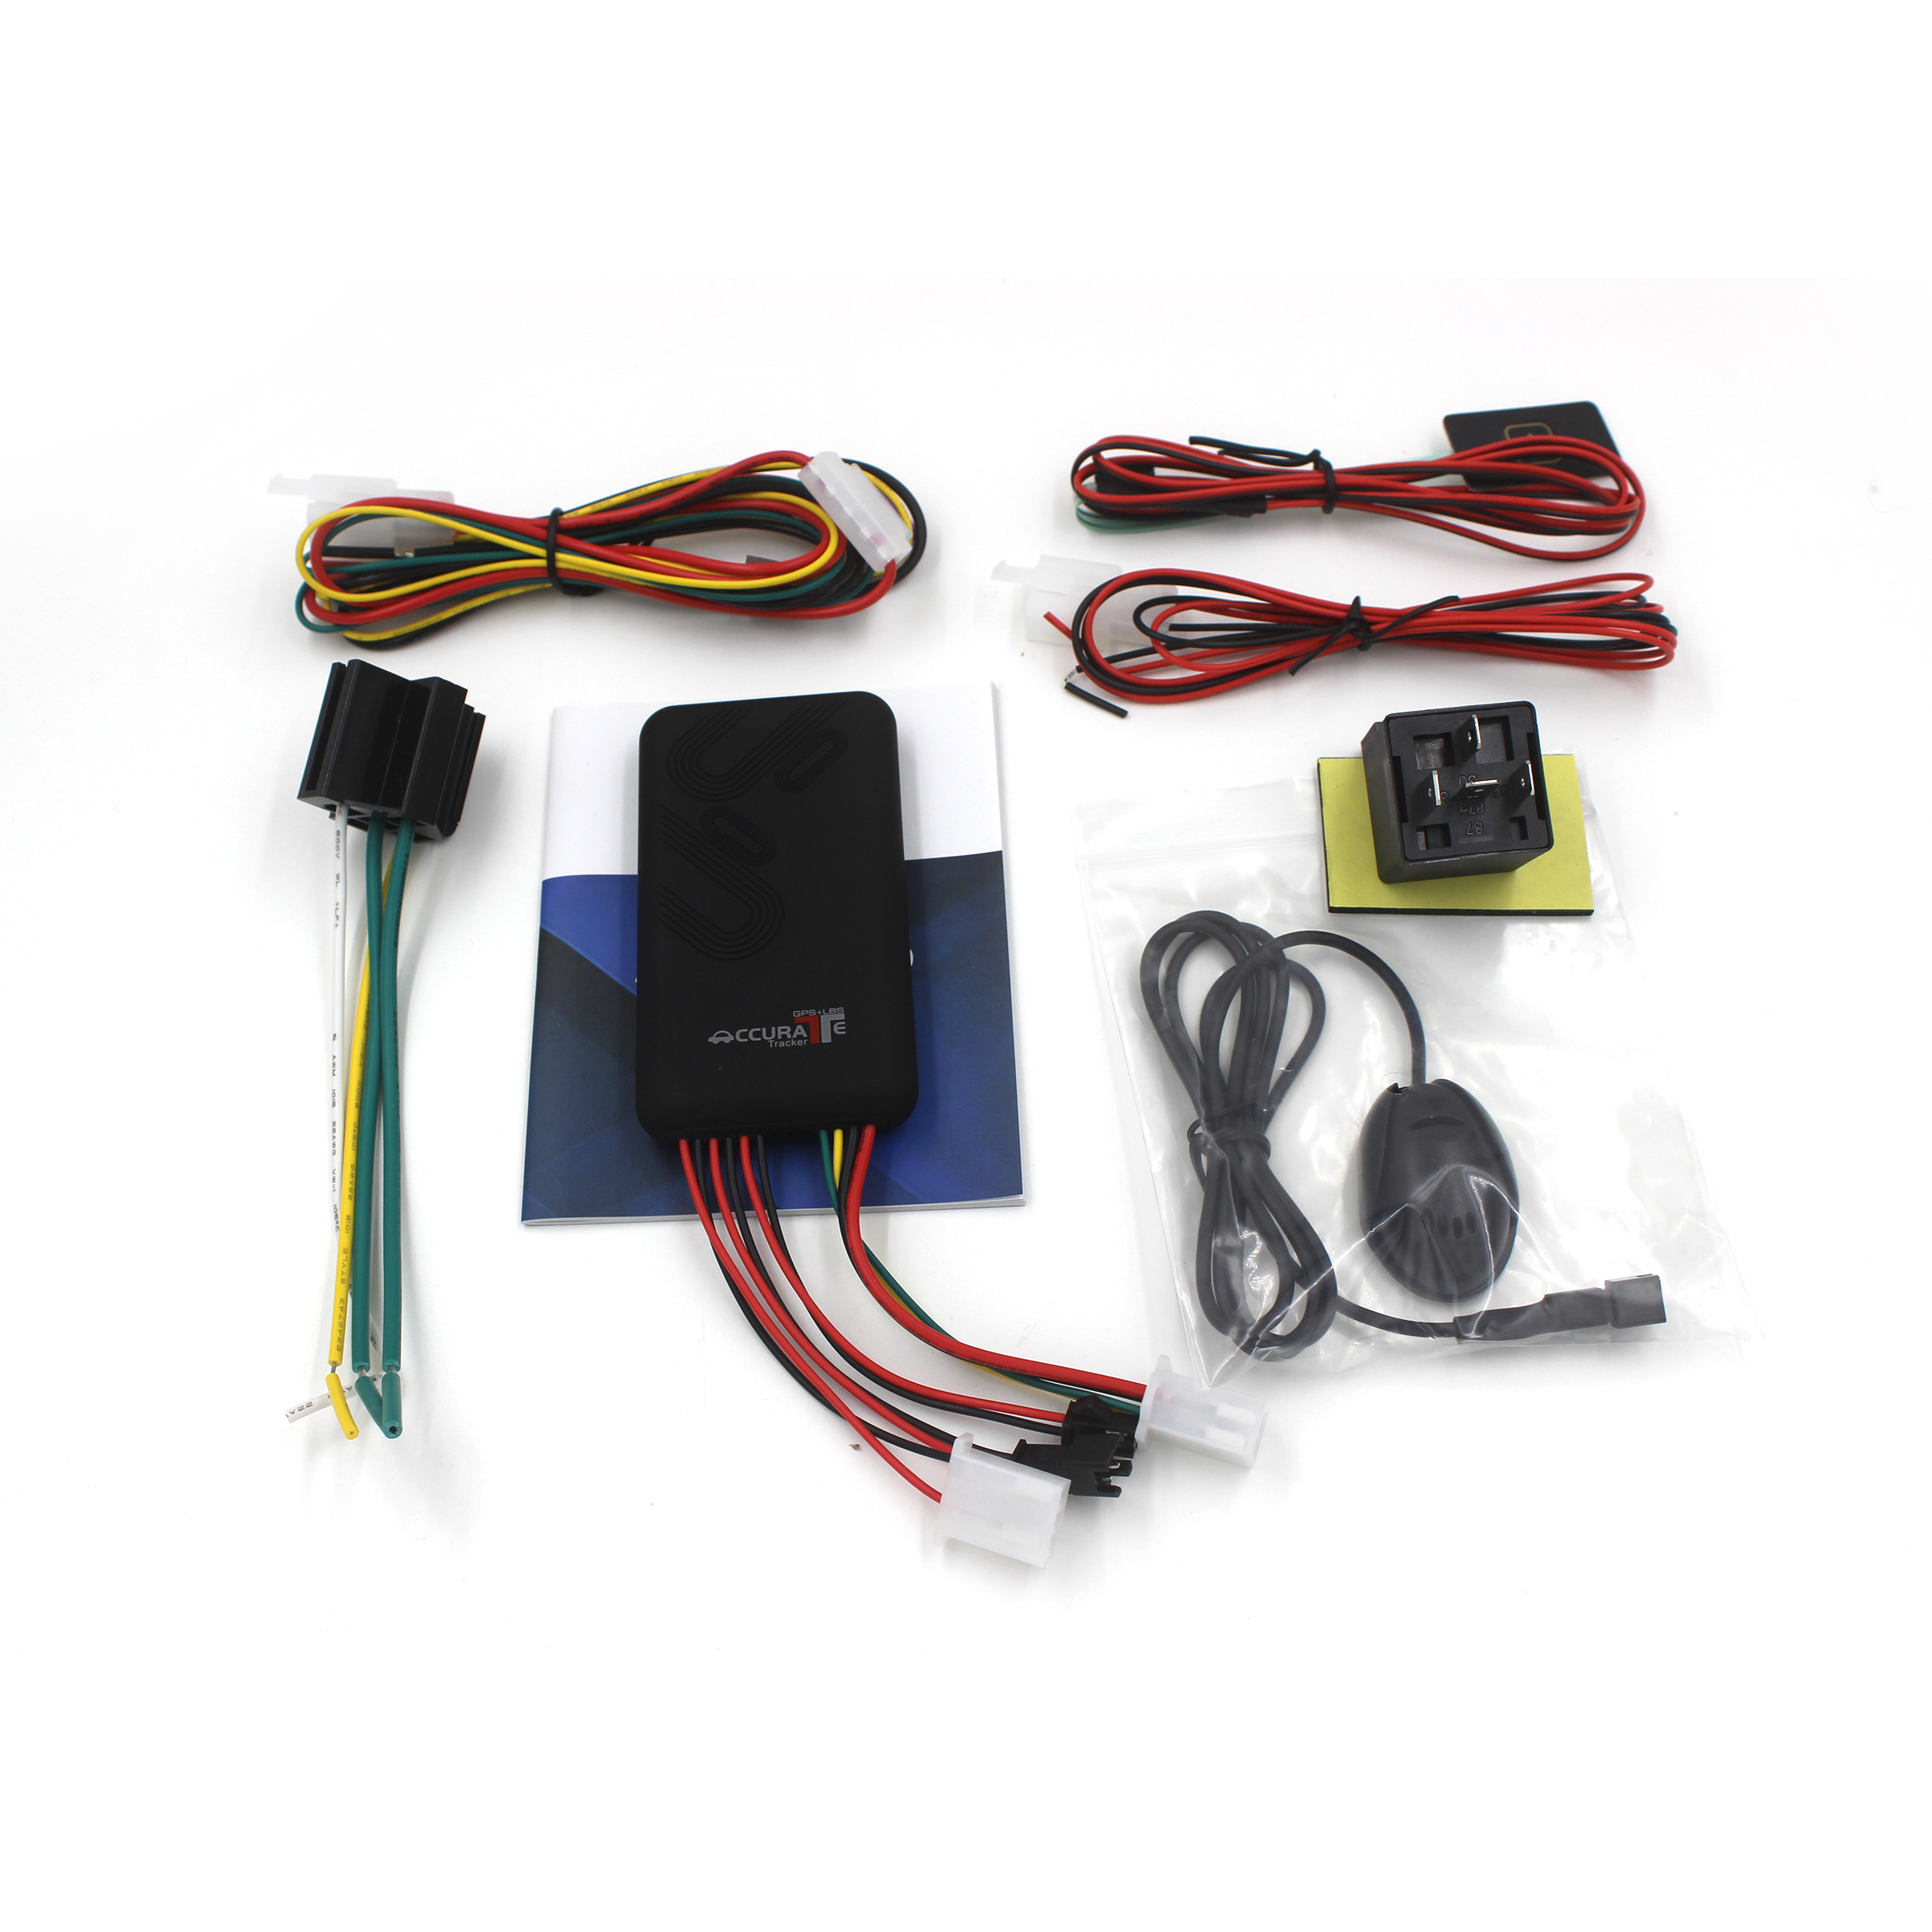 China With Gps, China With Gps Manufacturers and Suppliers on